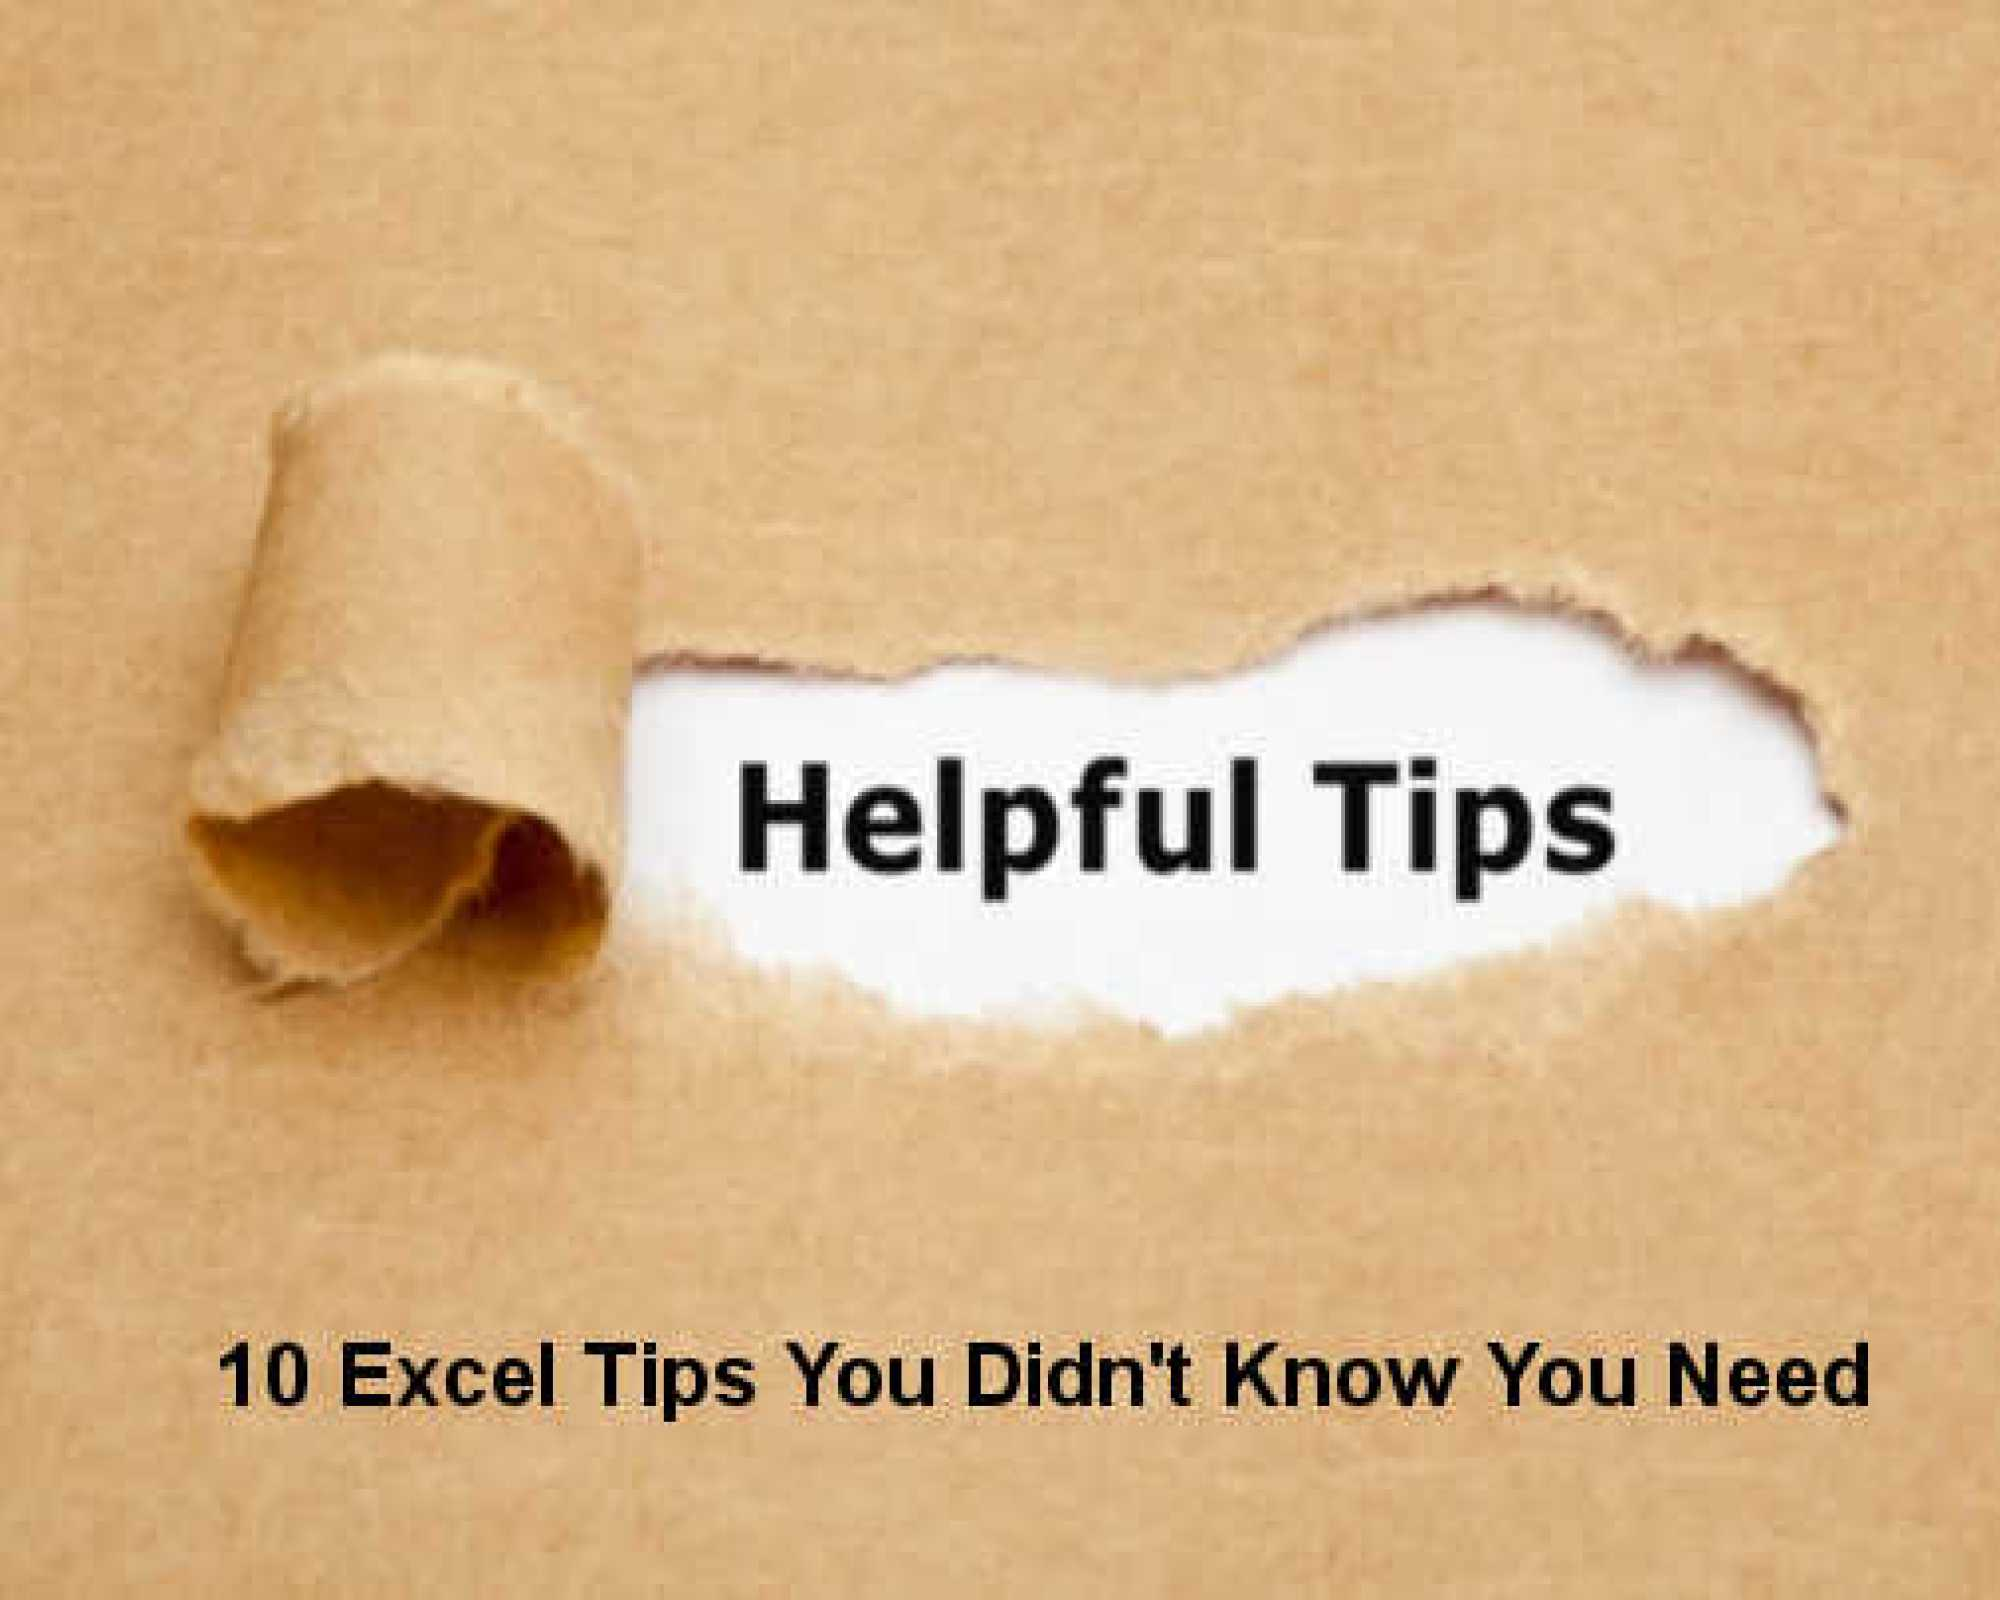 tips pc miler add in excel 2010